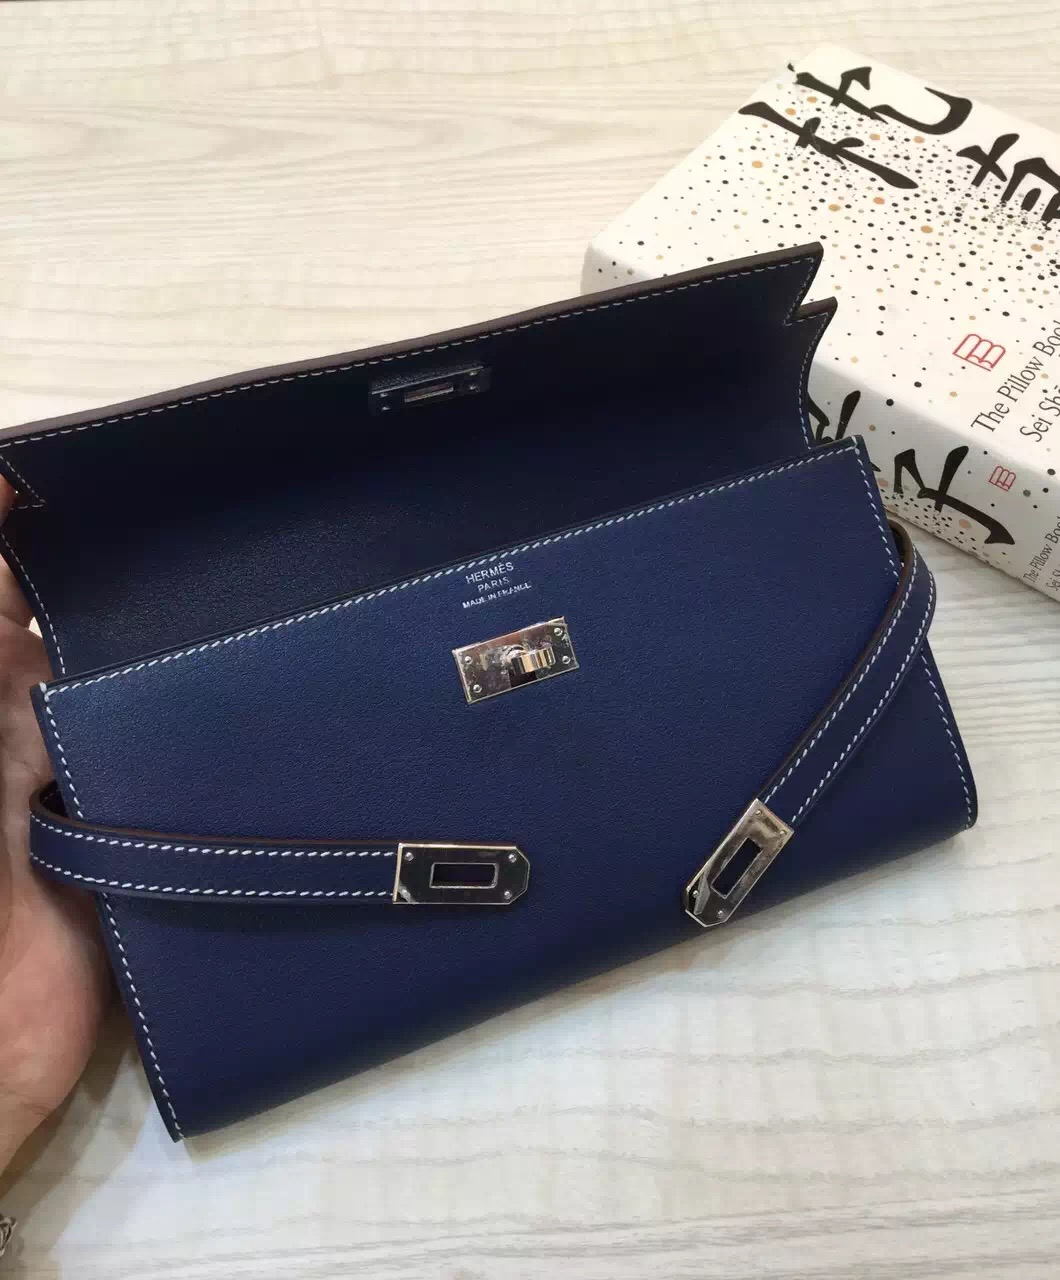 Discount Hermes Constance Wallet 7A Royal Blue Swift Leather Clutch Bag